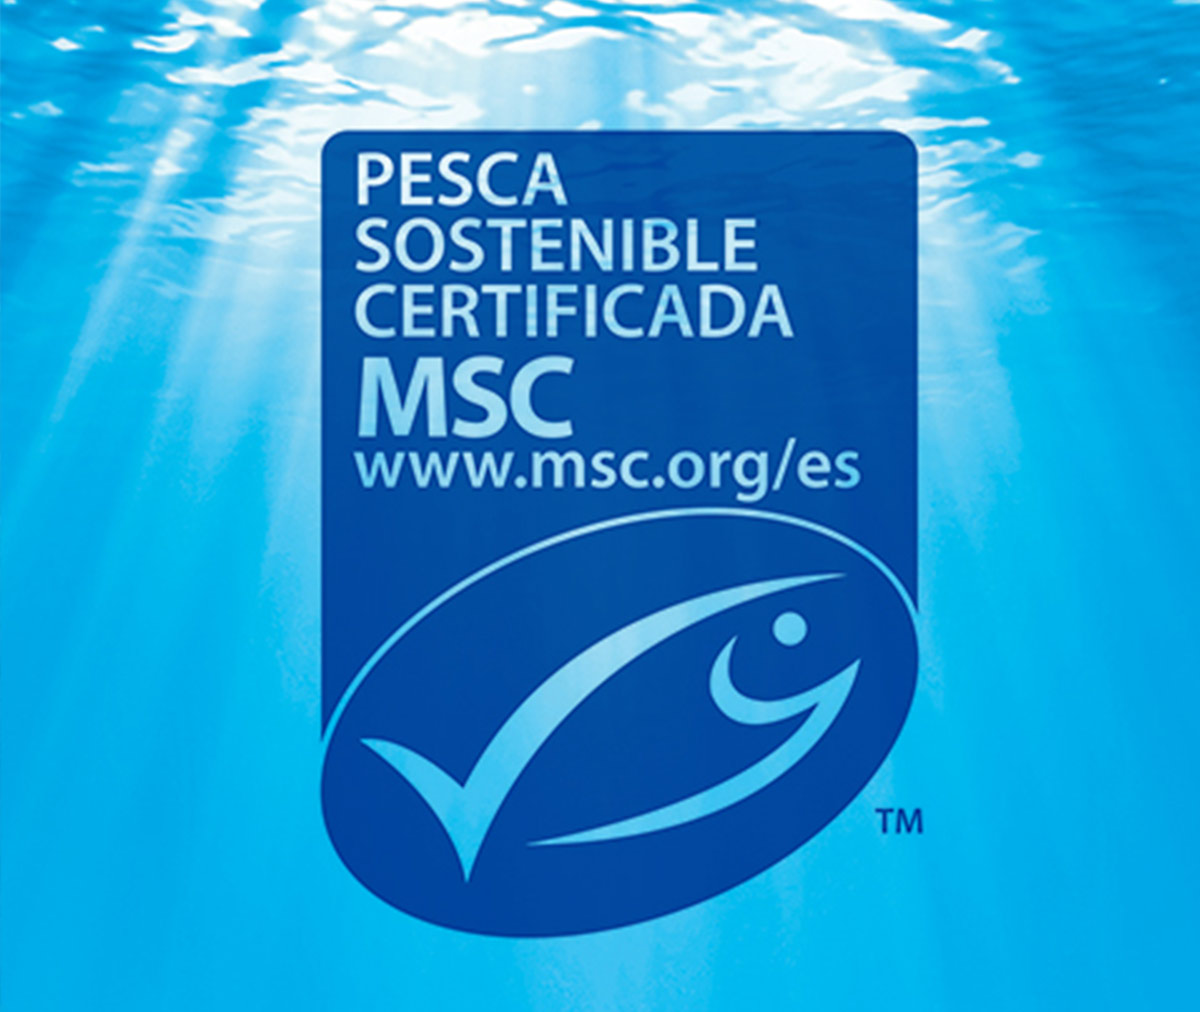 Seafreeze Limited, Grupo Profand's subsidiary, received the MSC certification of sustainable fishing